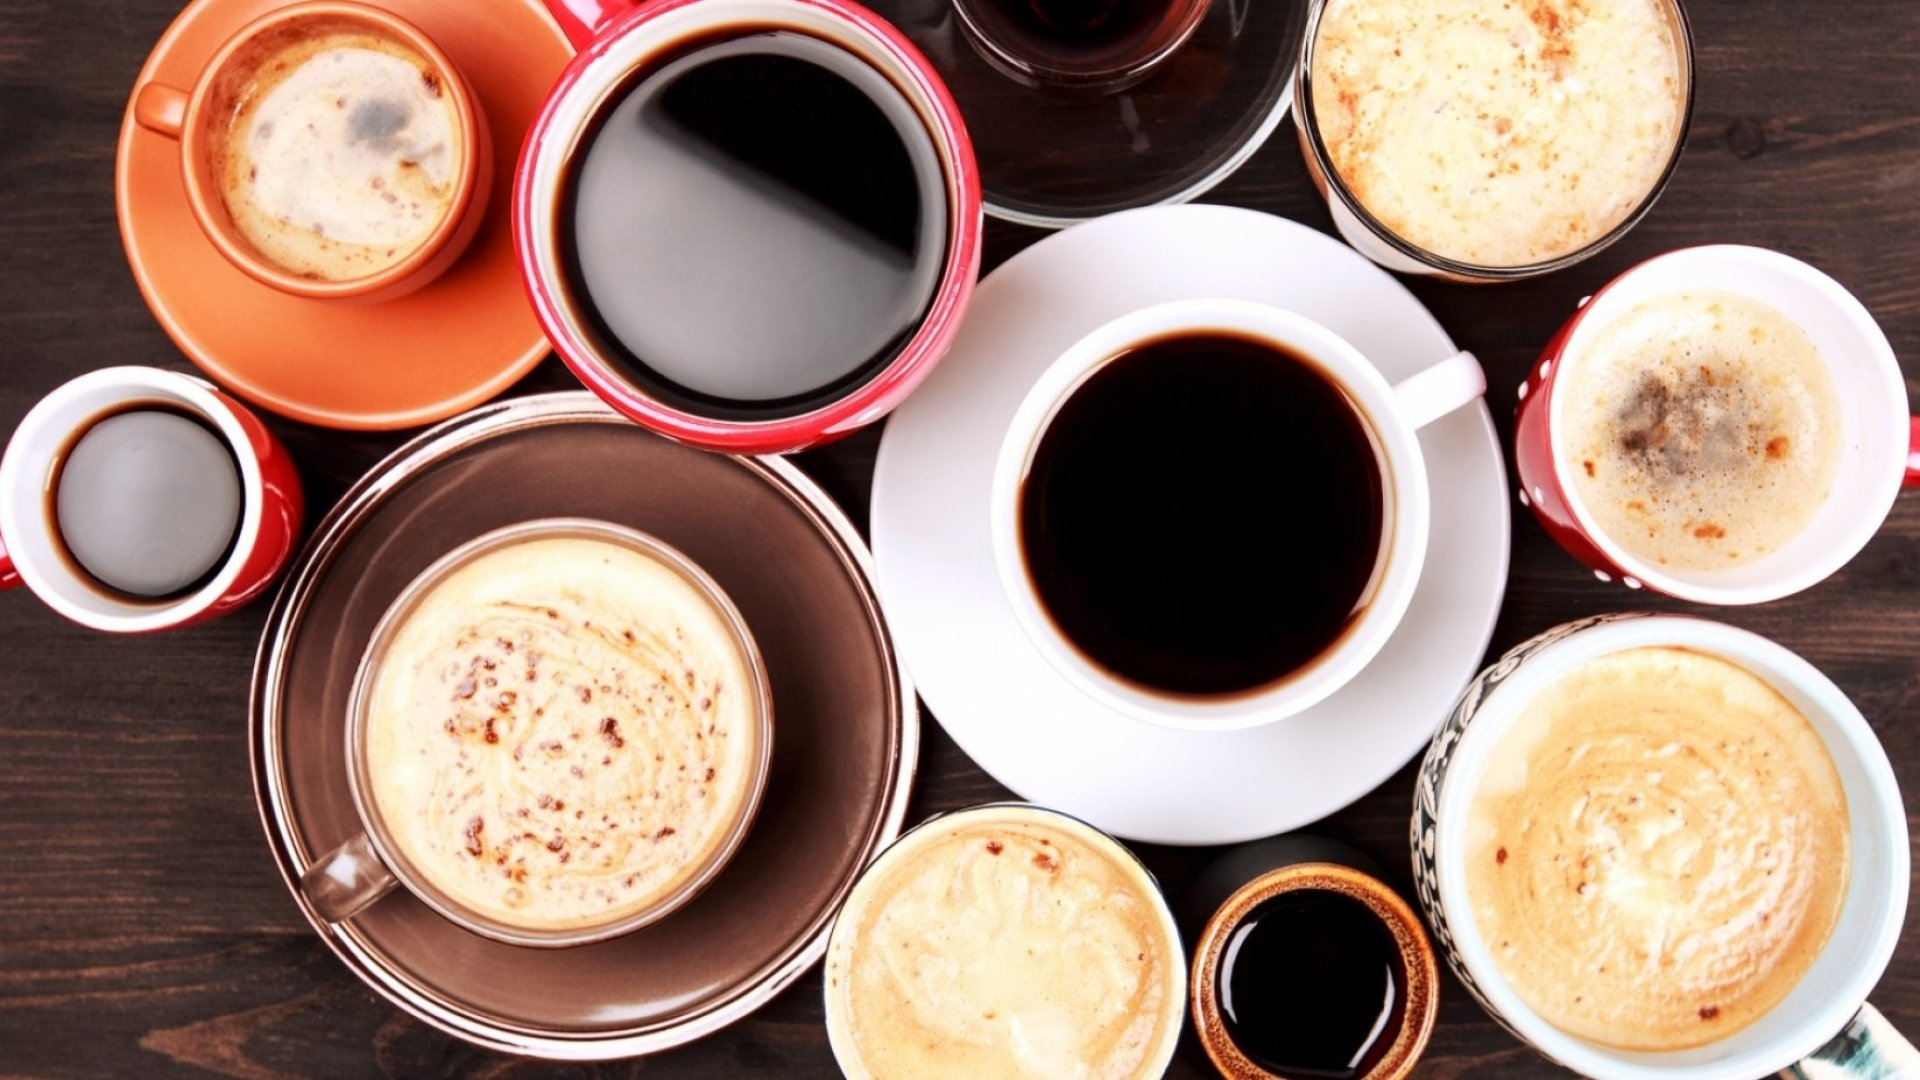 Love Coffee? Surprise! You Probably Aren't Drinking Enough, According to Science